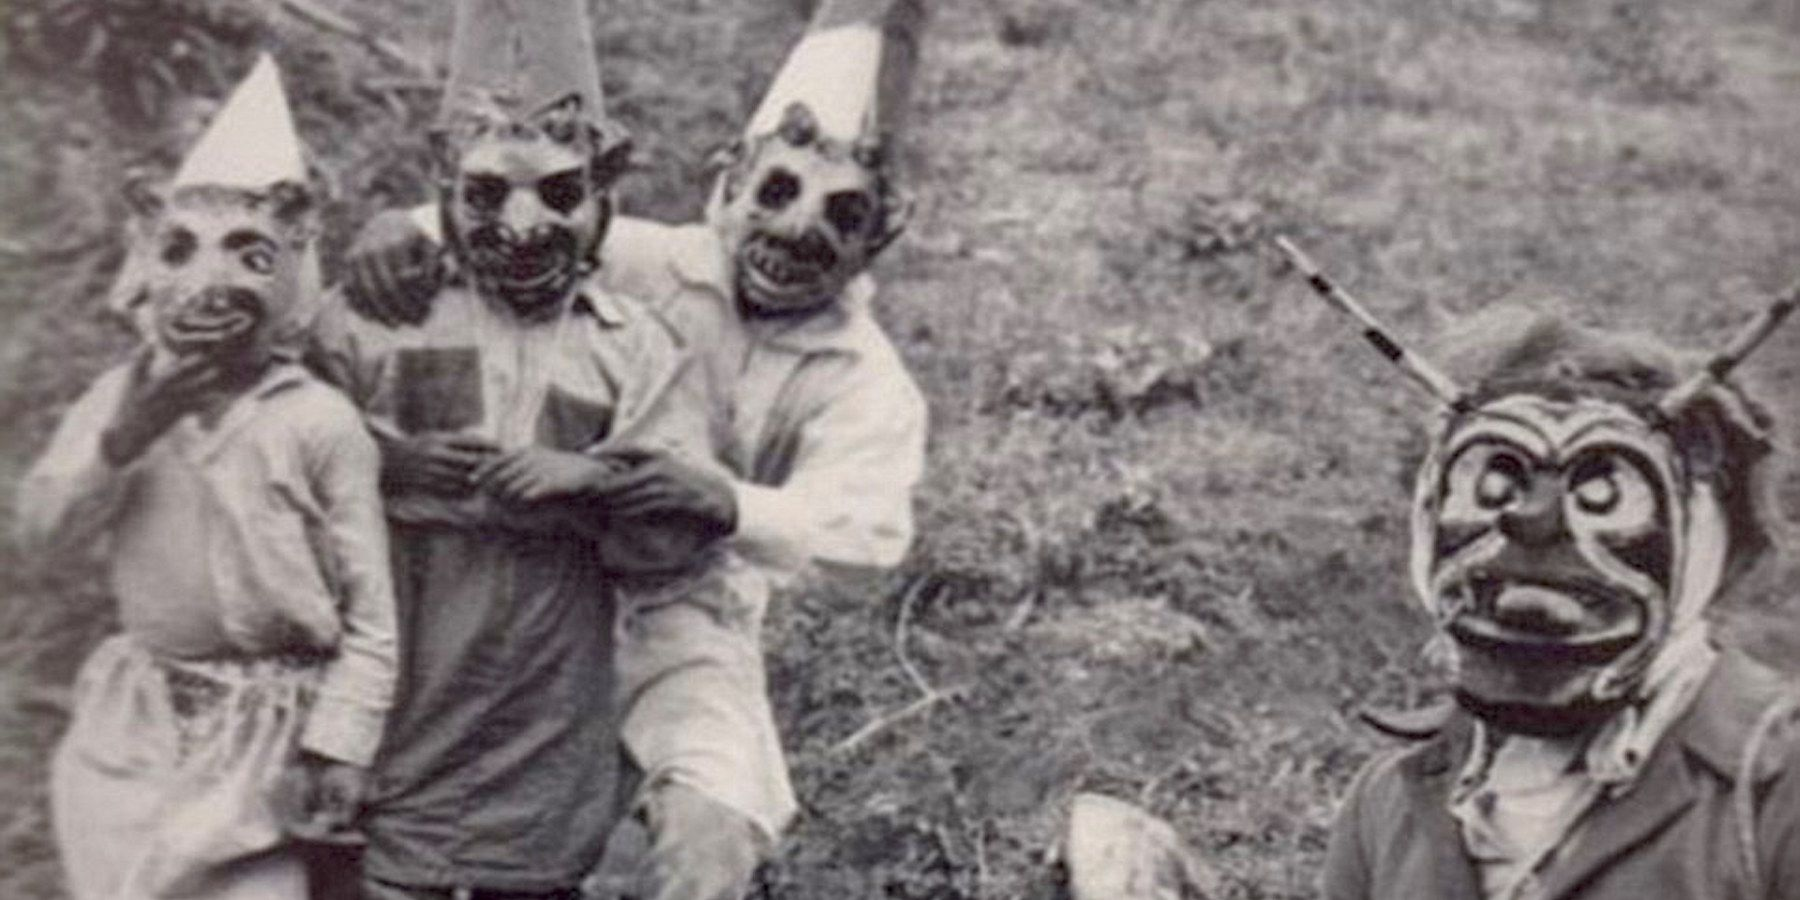 Vintage Halloween Costume Pictures.Terrifying Vintage Halloween Costumes That Are The Stuff Of Nightmares